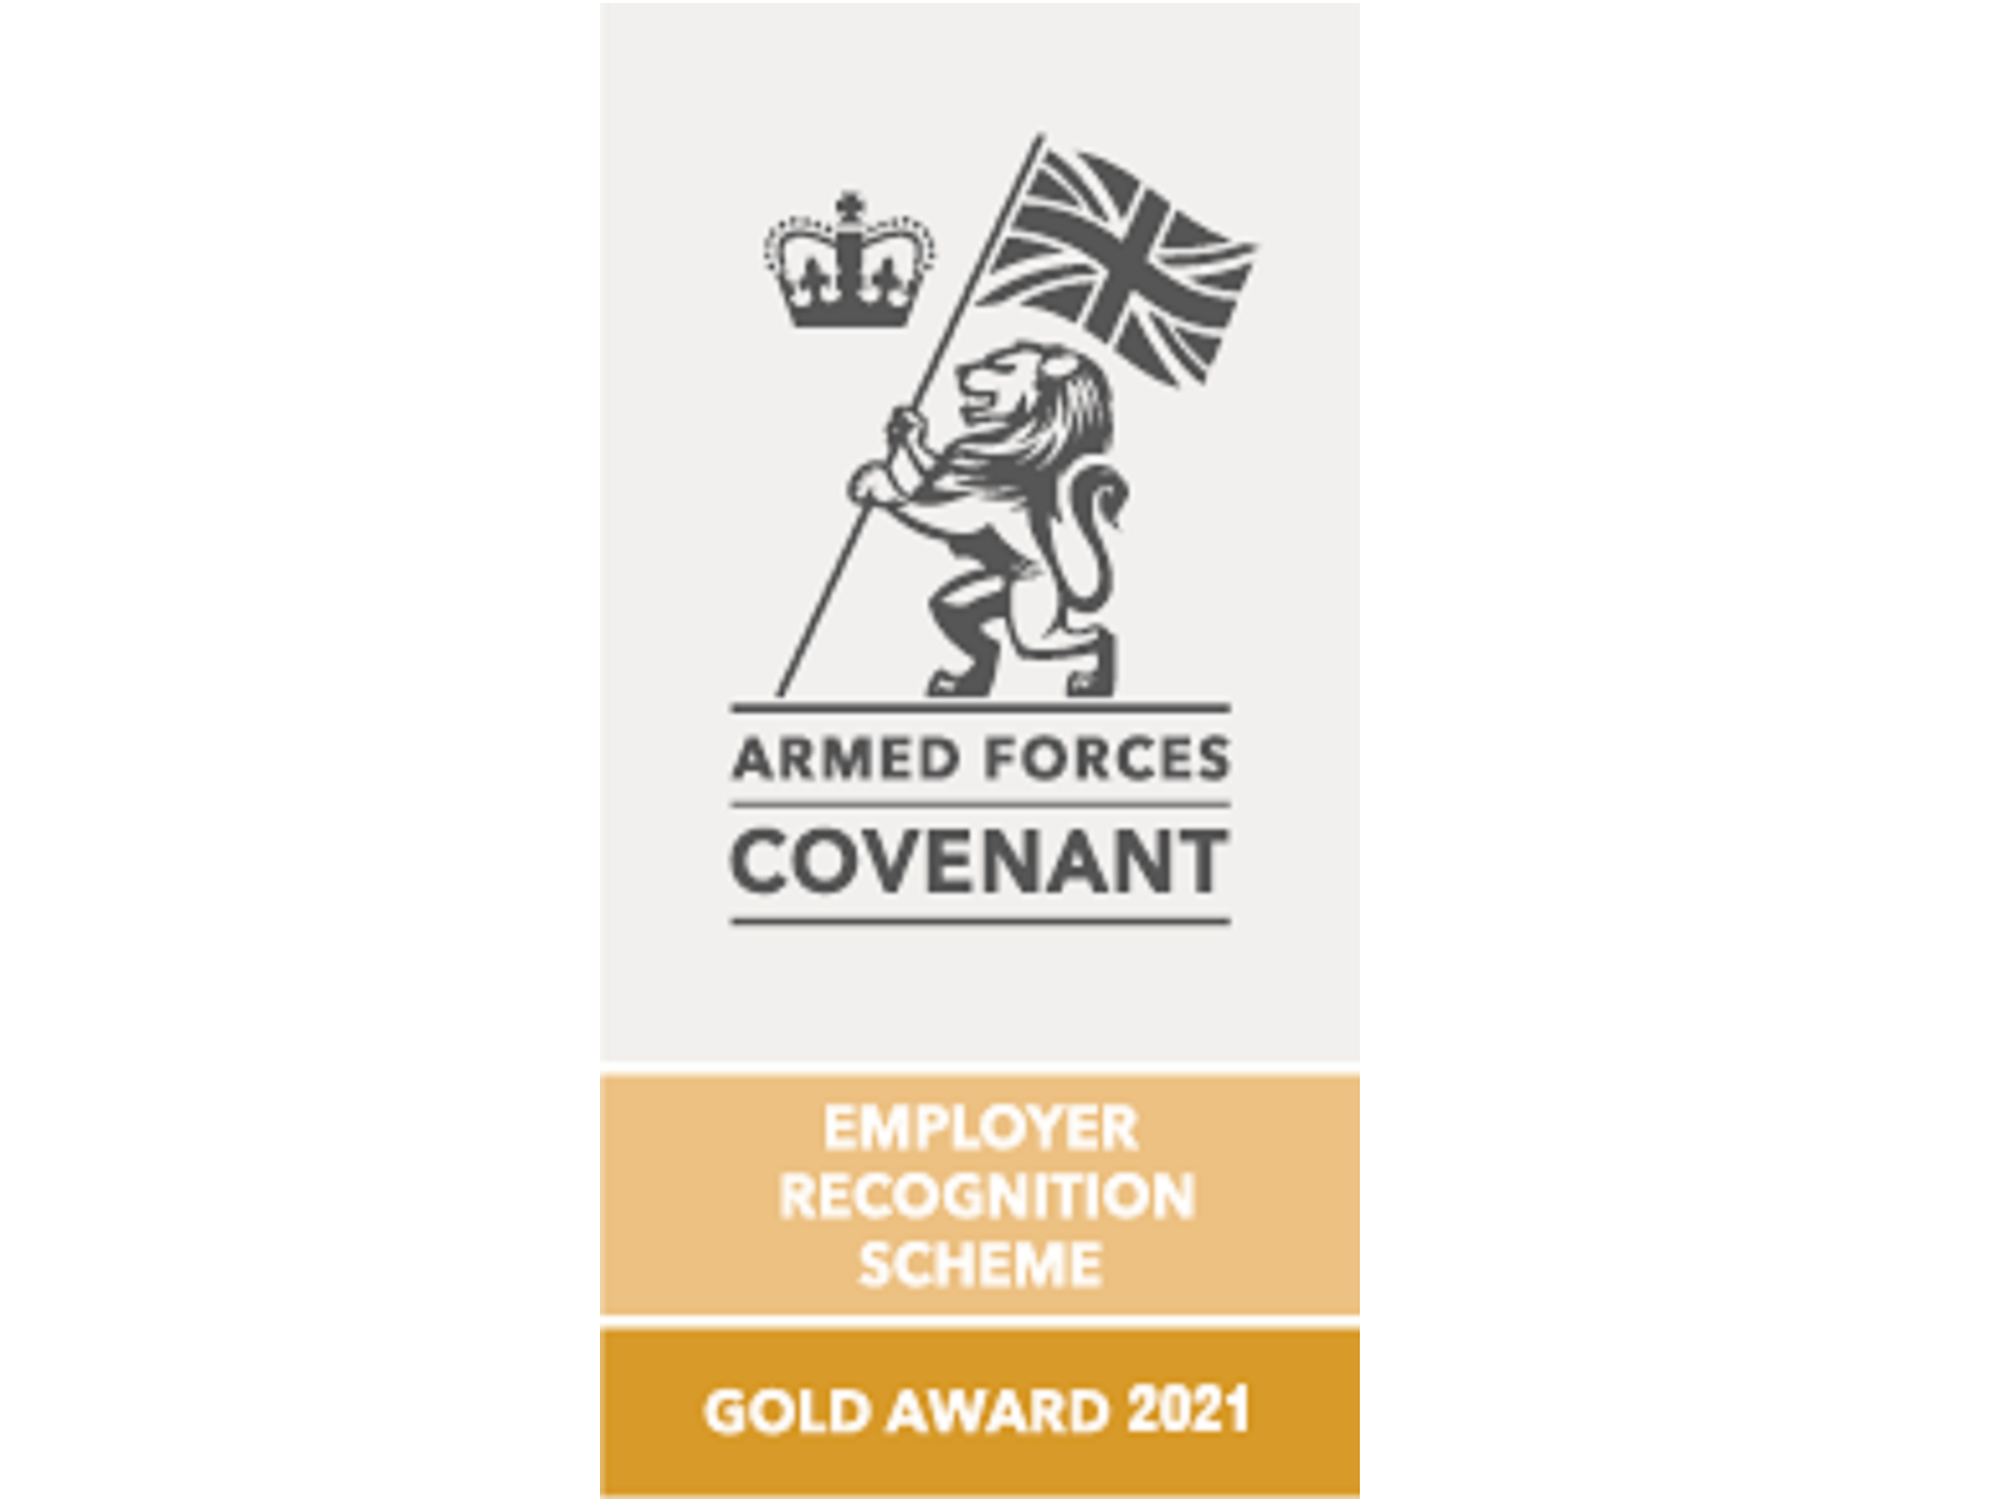 Gold Award logo for the 2021 Ministry of Defence Employer Recognition Scheme